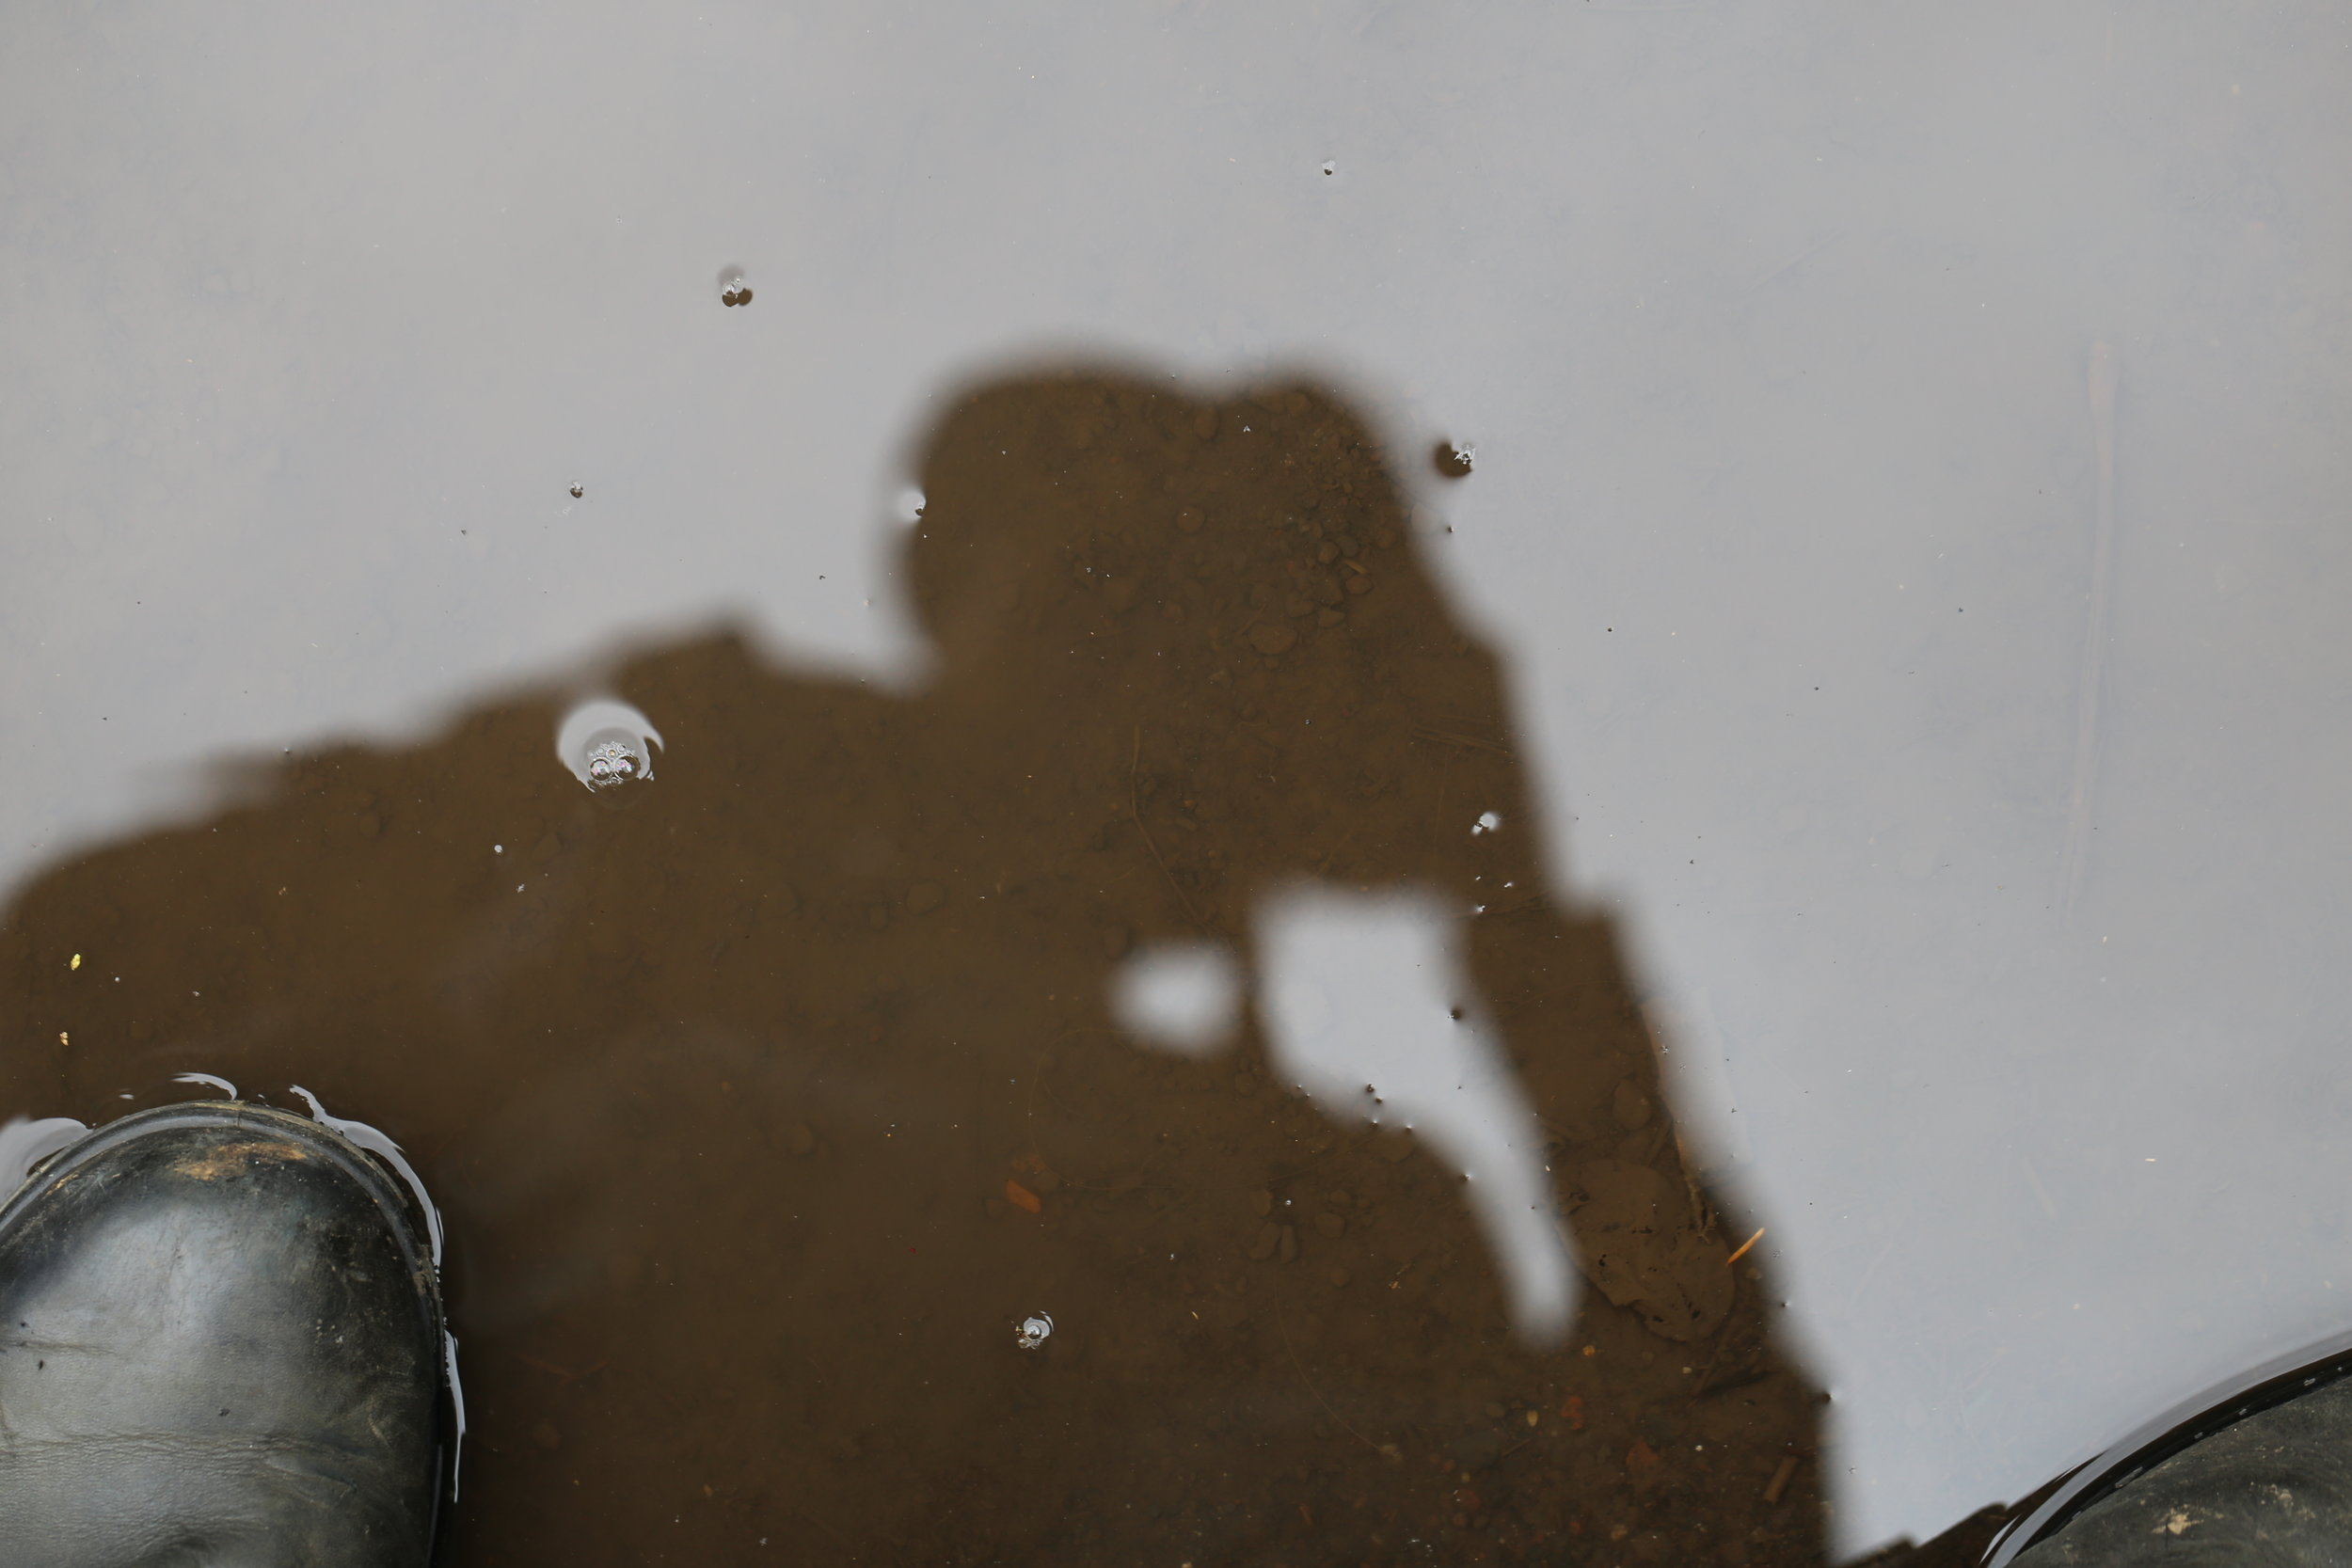 Puddle selfie silhouette